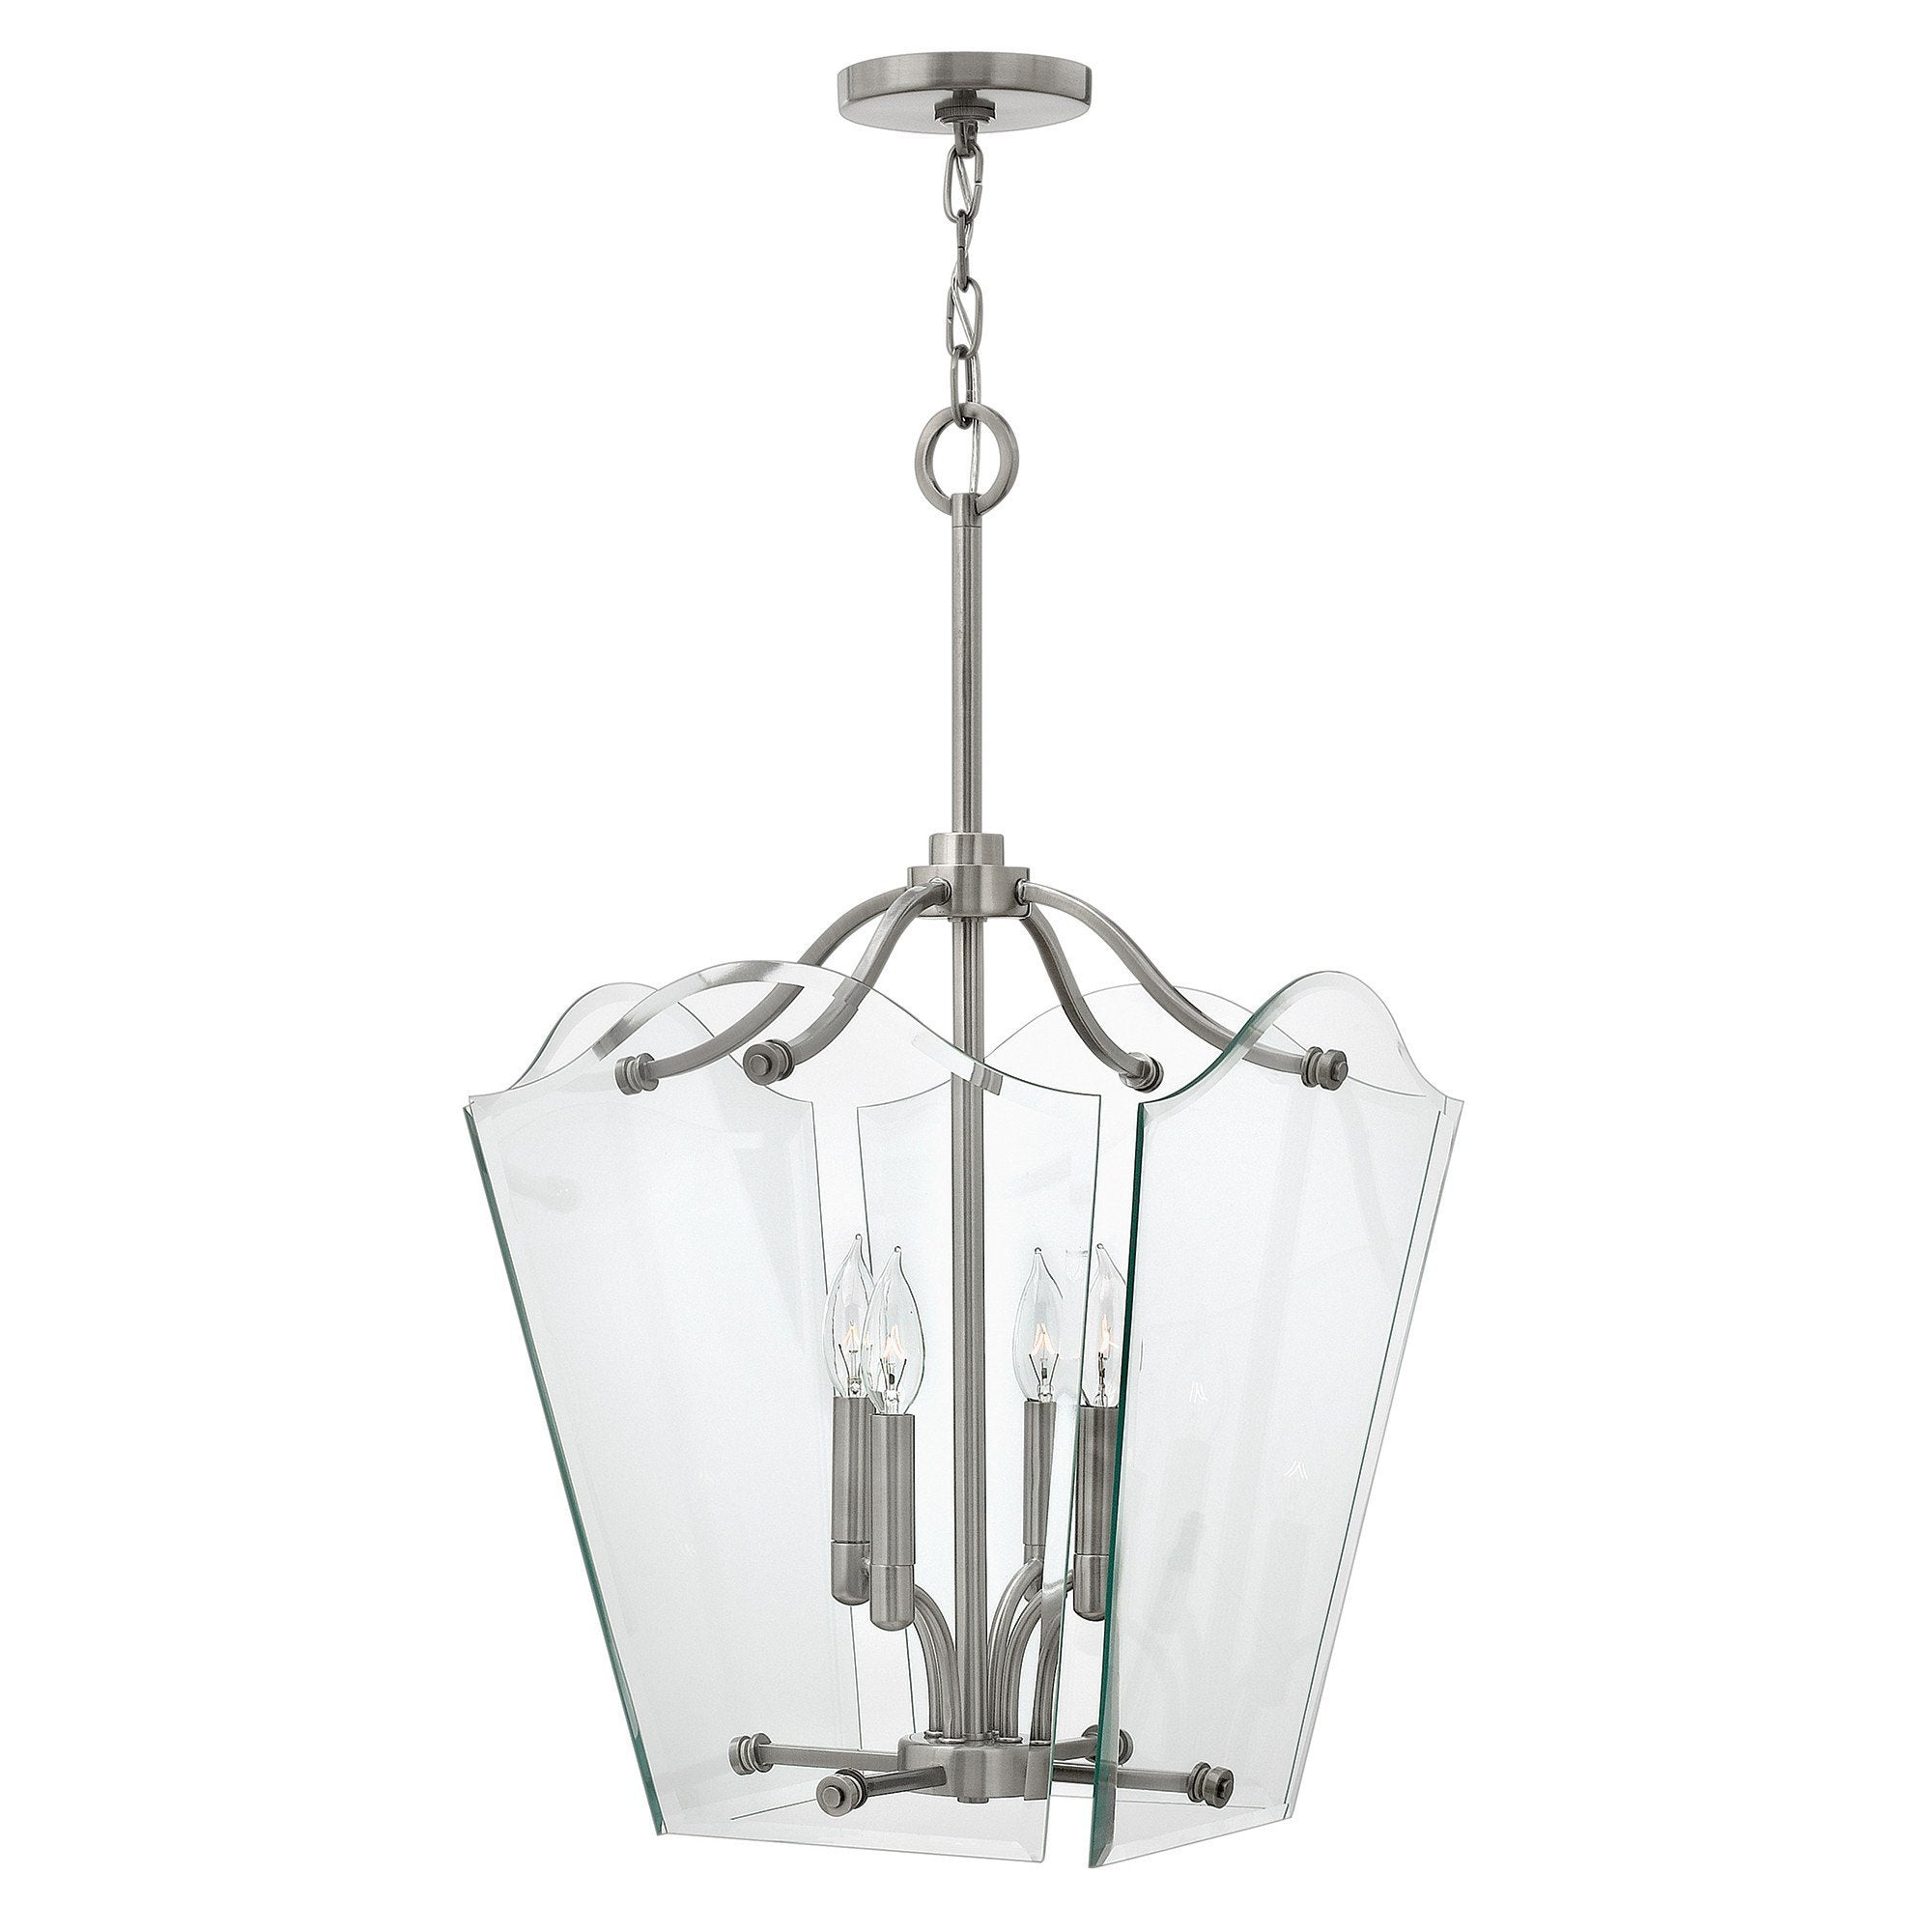 Hinkley Wingate Medium Pendant - London Lighting - 1